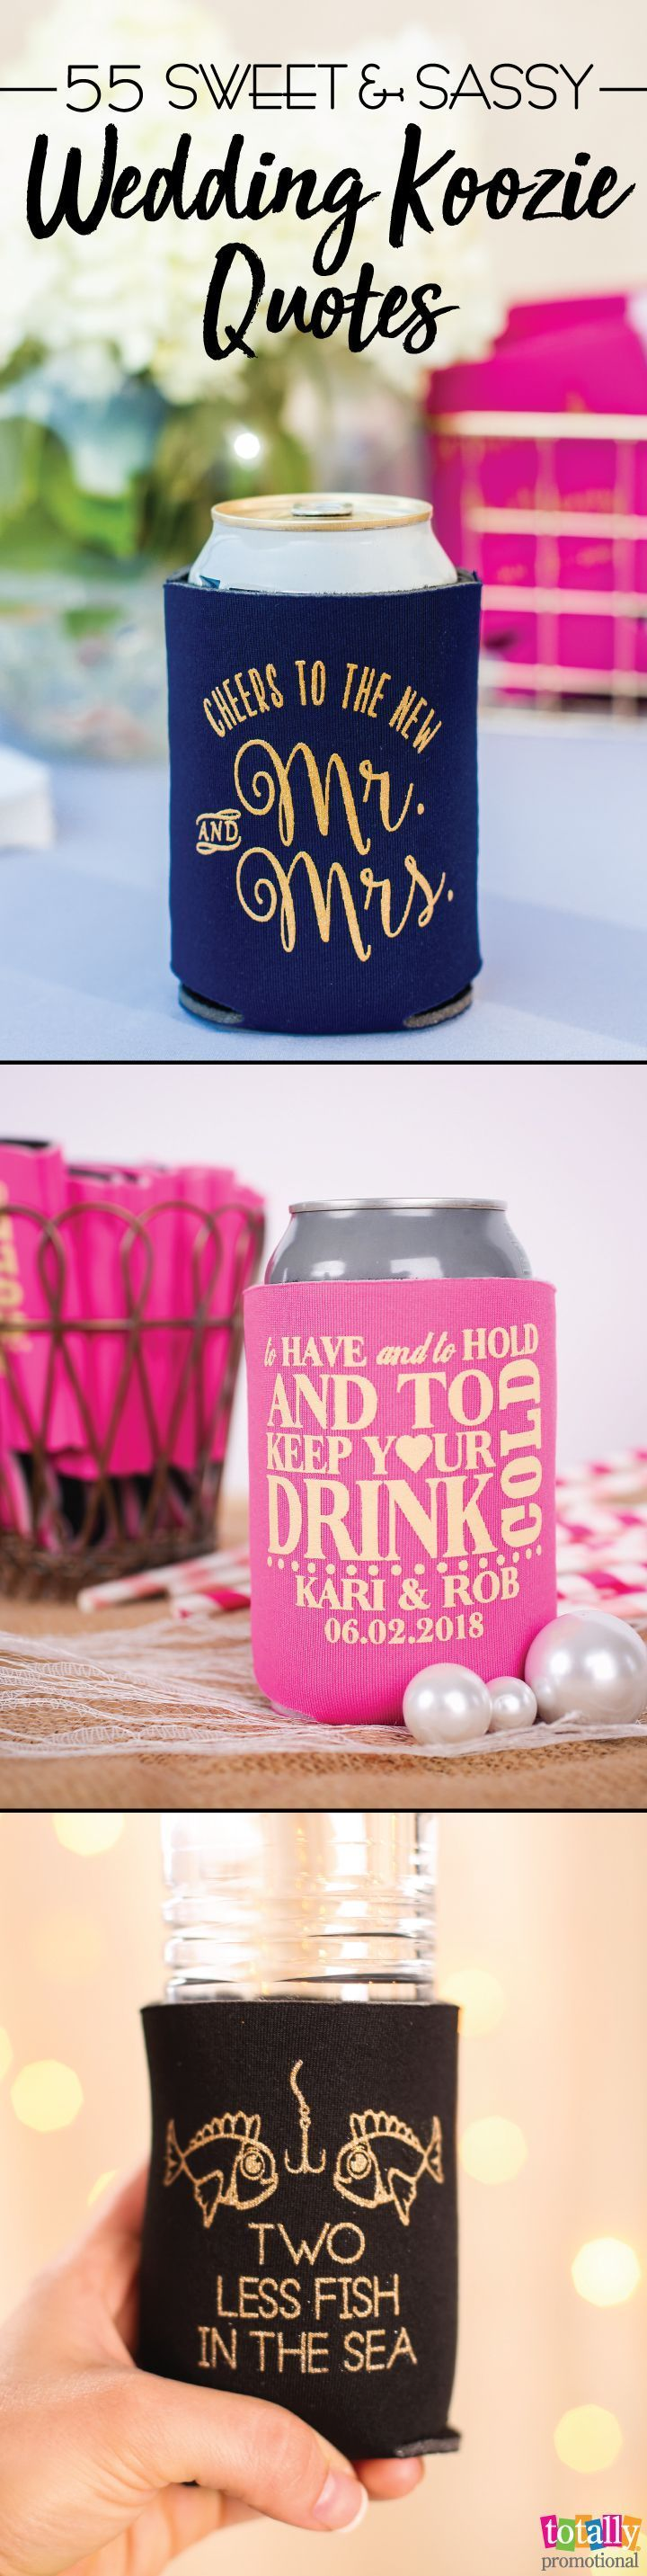 Still looking for the perfect wedding favor quote? Then consider ...